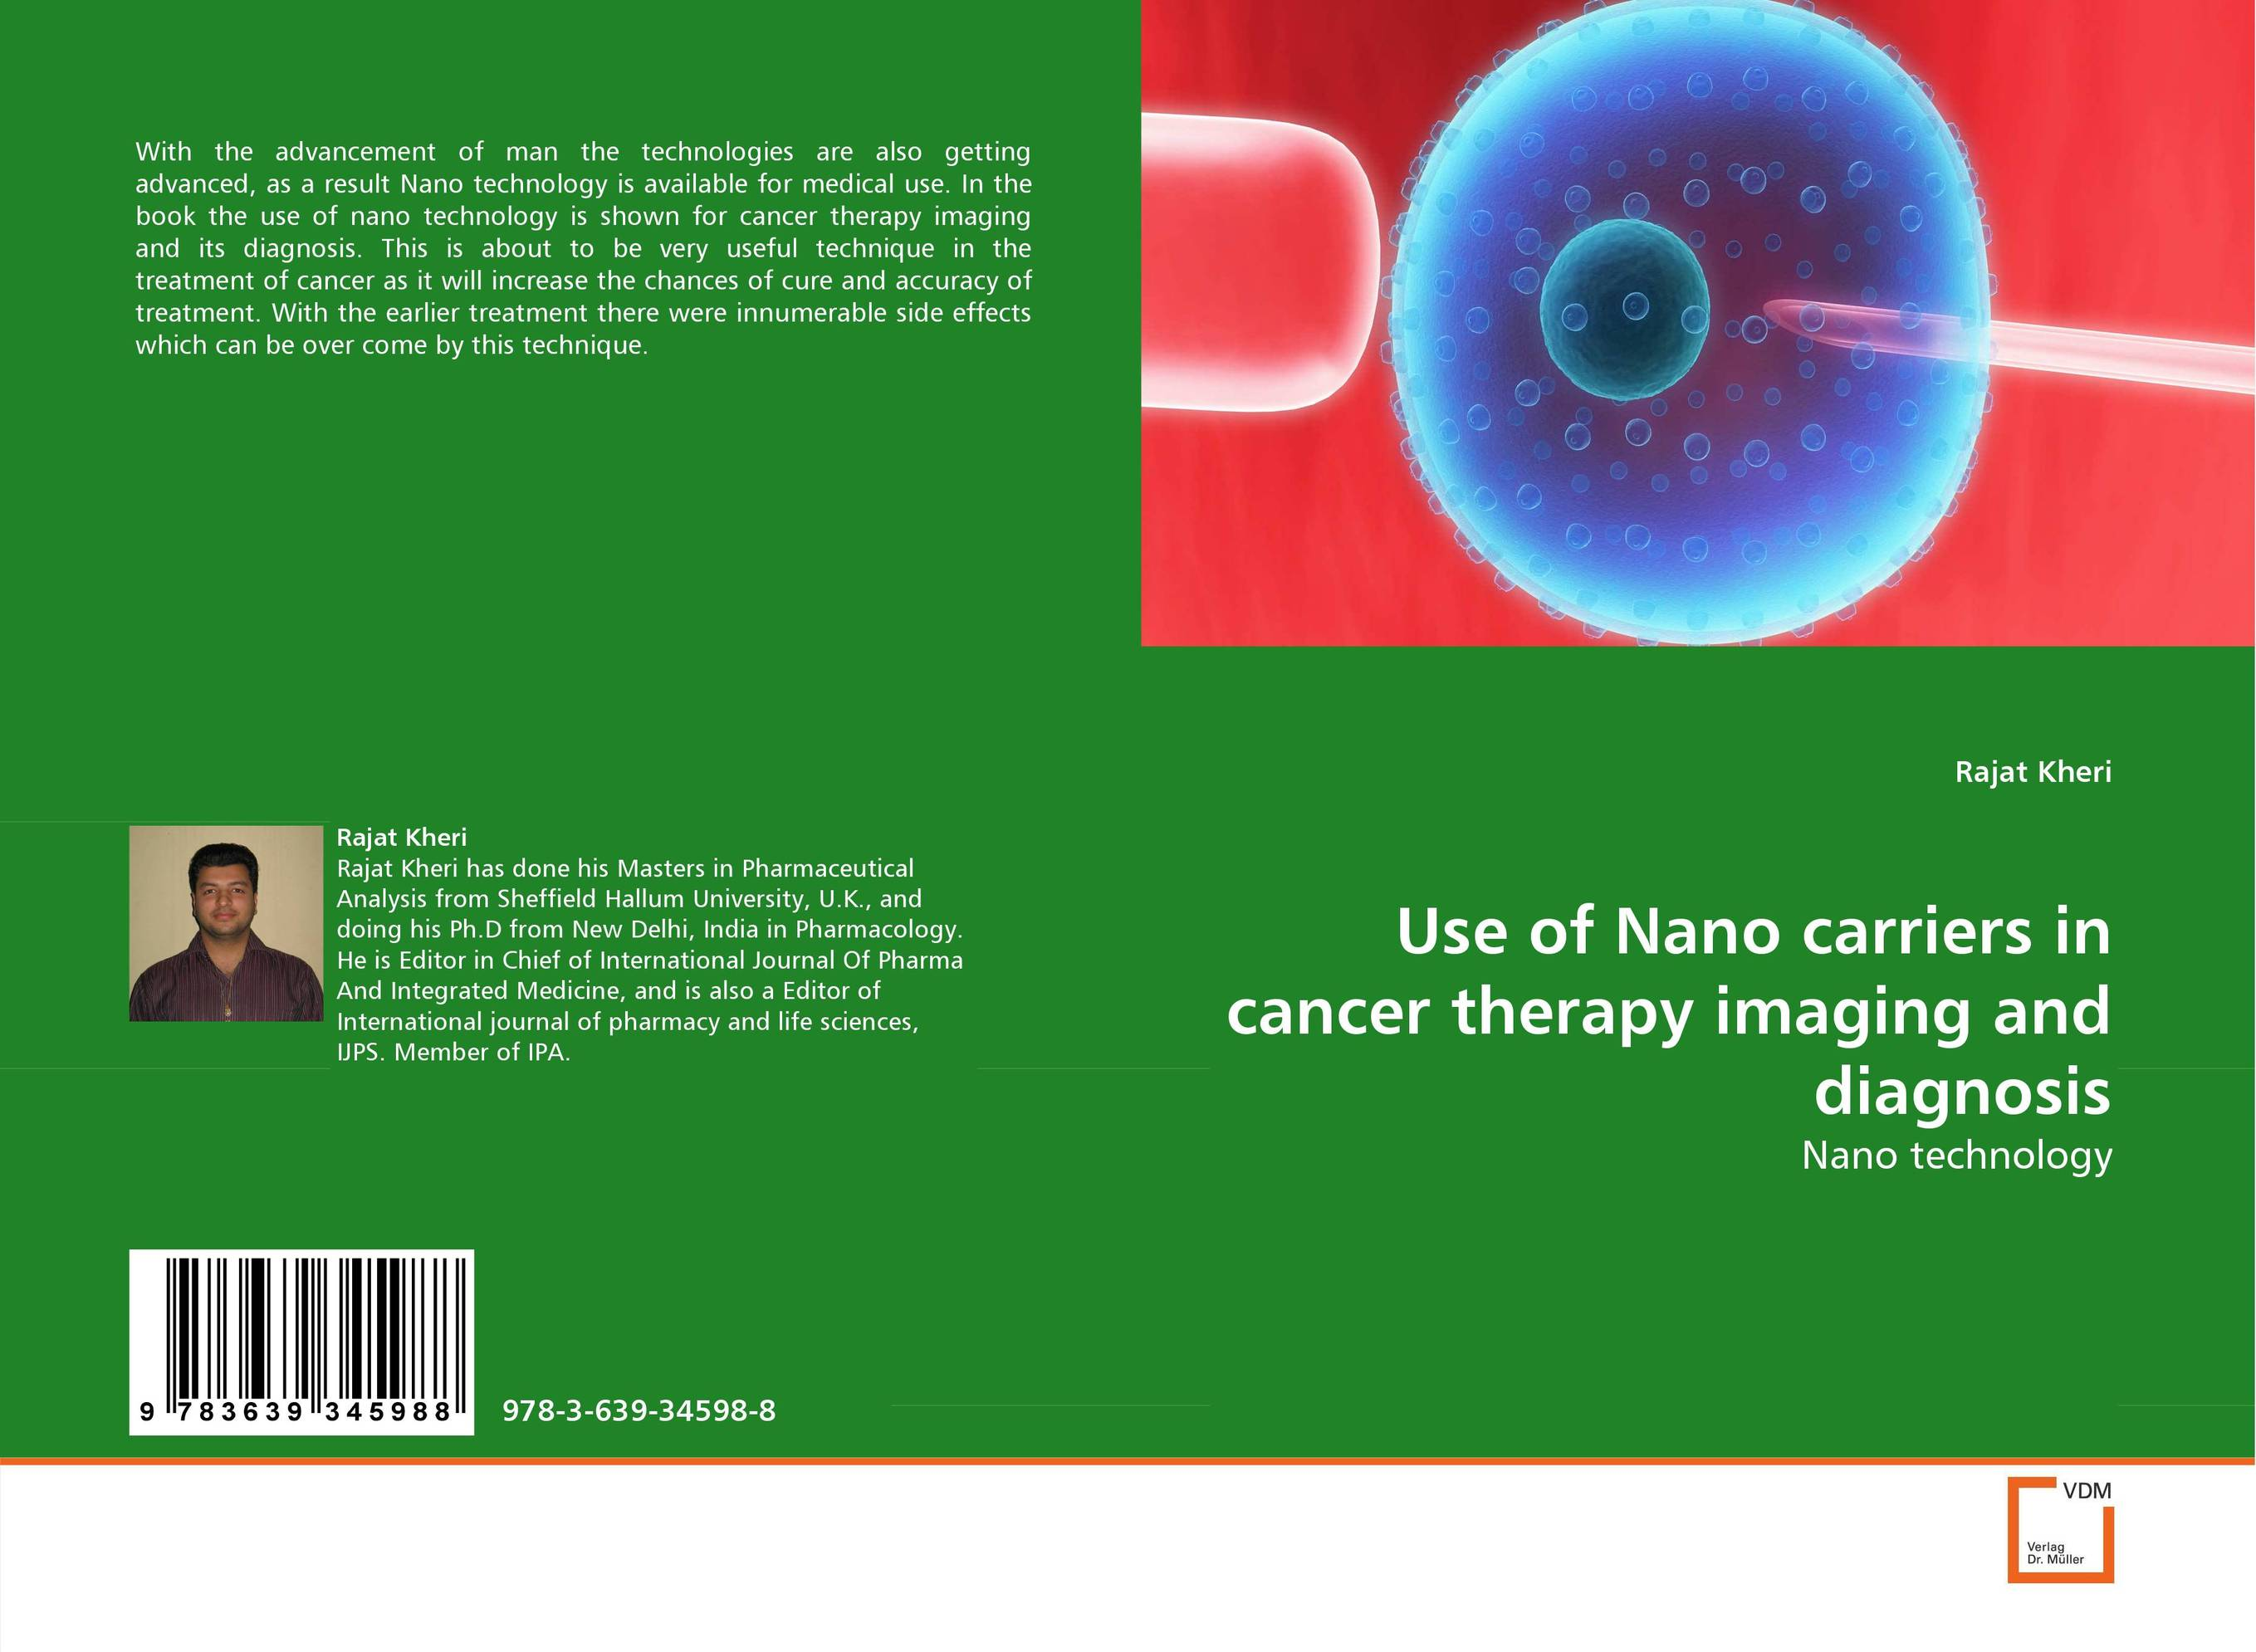 Use of Nano carriers in cancer therapy imaging and diagnosis franke bibliotheca cardiologica ballistocardiogra phy research and computer diagnosis